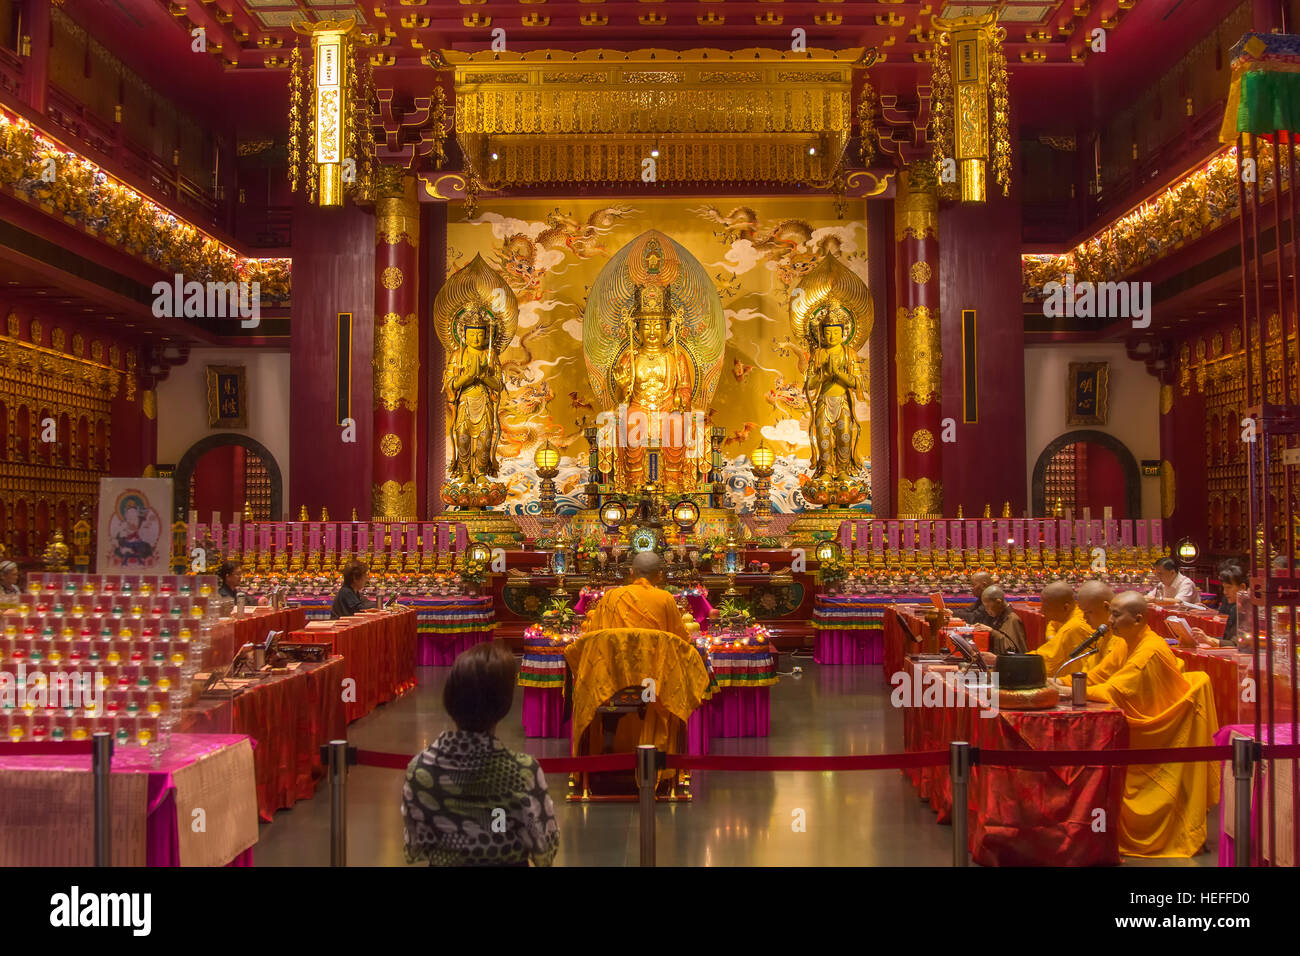 Interior of the Buddha Tooth Relic temple in Chinatown, Singapore - Stock Image